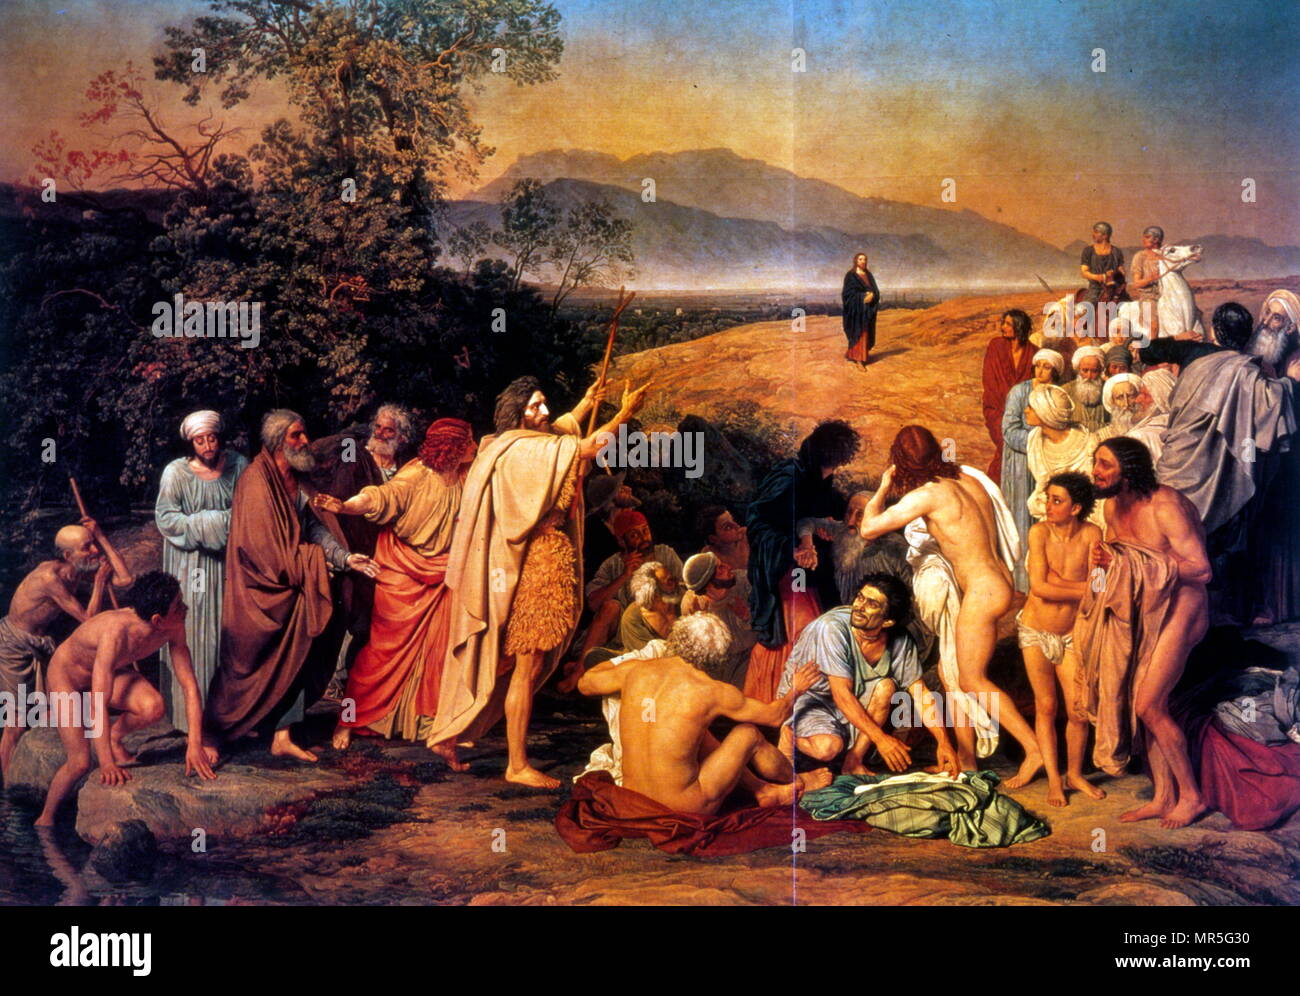 The Appearance of Christ Before the People (Apparition of the Messiah); 1857. oil painting on canvas, measuring 540 cm × 750 cm, by the Russian painter Alexander Andreyevich Ivanov (1806–1858) took 20 years to complete (1837–1857). The narrative of the painting alludes to several stories in the Bible. In the center, John the Baptist, wearing an animal skin, is standing on the banks of the River Jordan. He points towards a figure in the distance, approaching the scene. To the left stands the young John the Apostle, behind him St. Peter, and further on Andrew the Apostle and Nathaniel. - Stock Image